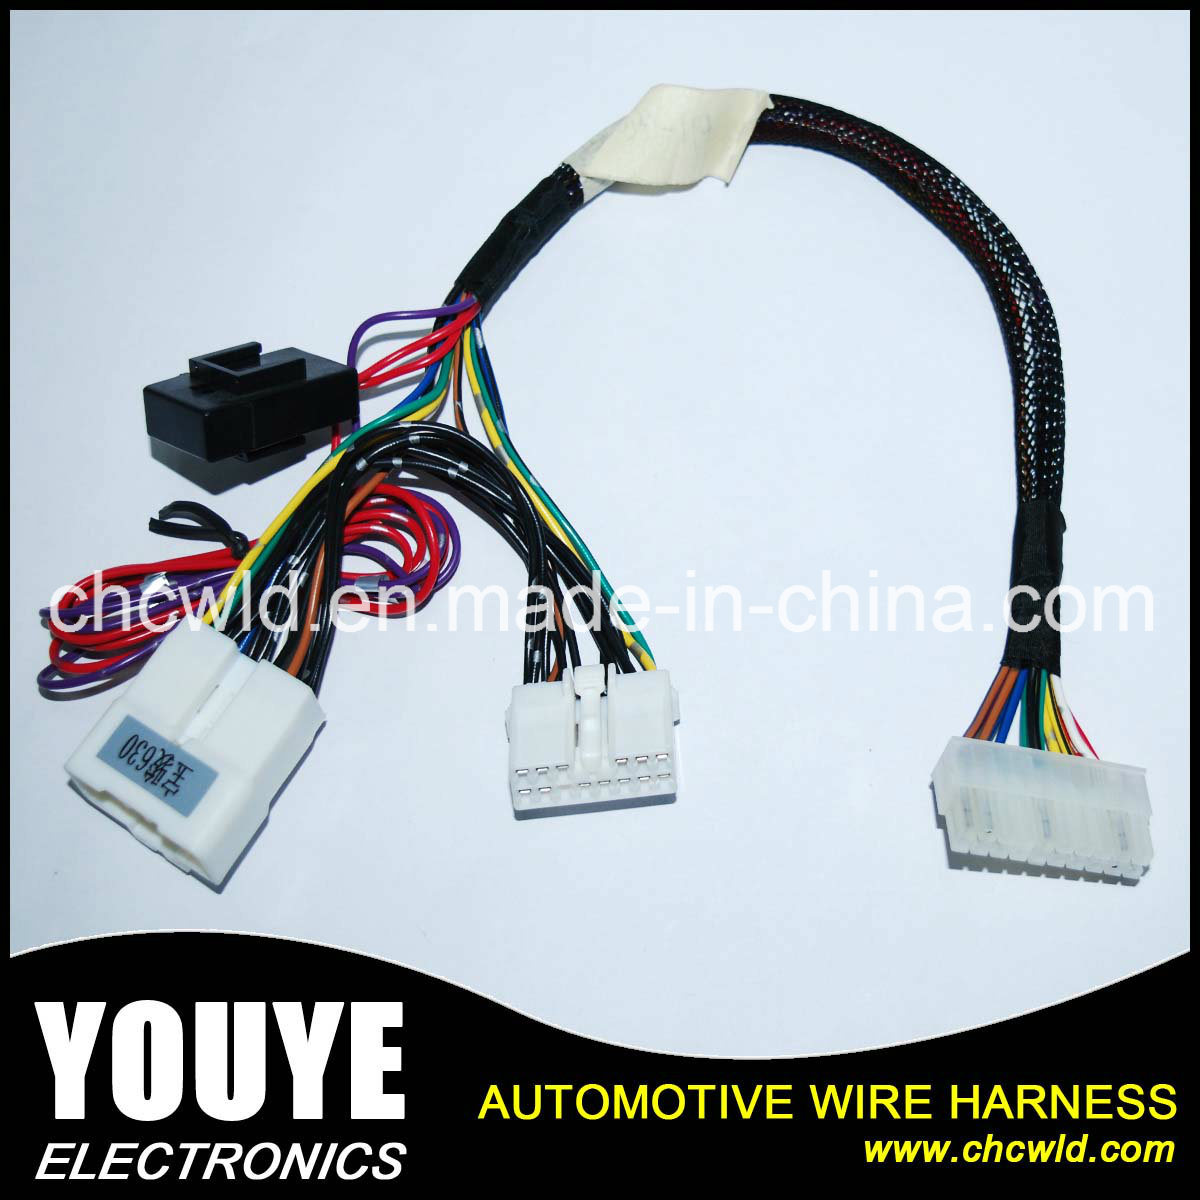 China Electrical Power Windon Wire Harness For Saic Gm Wuling Wiring Automobile Baojun Car Cable